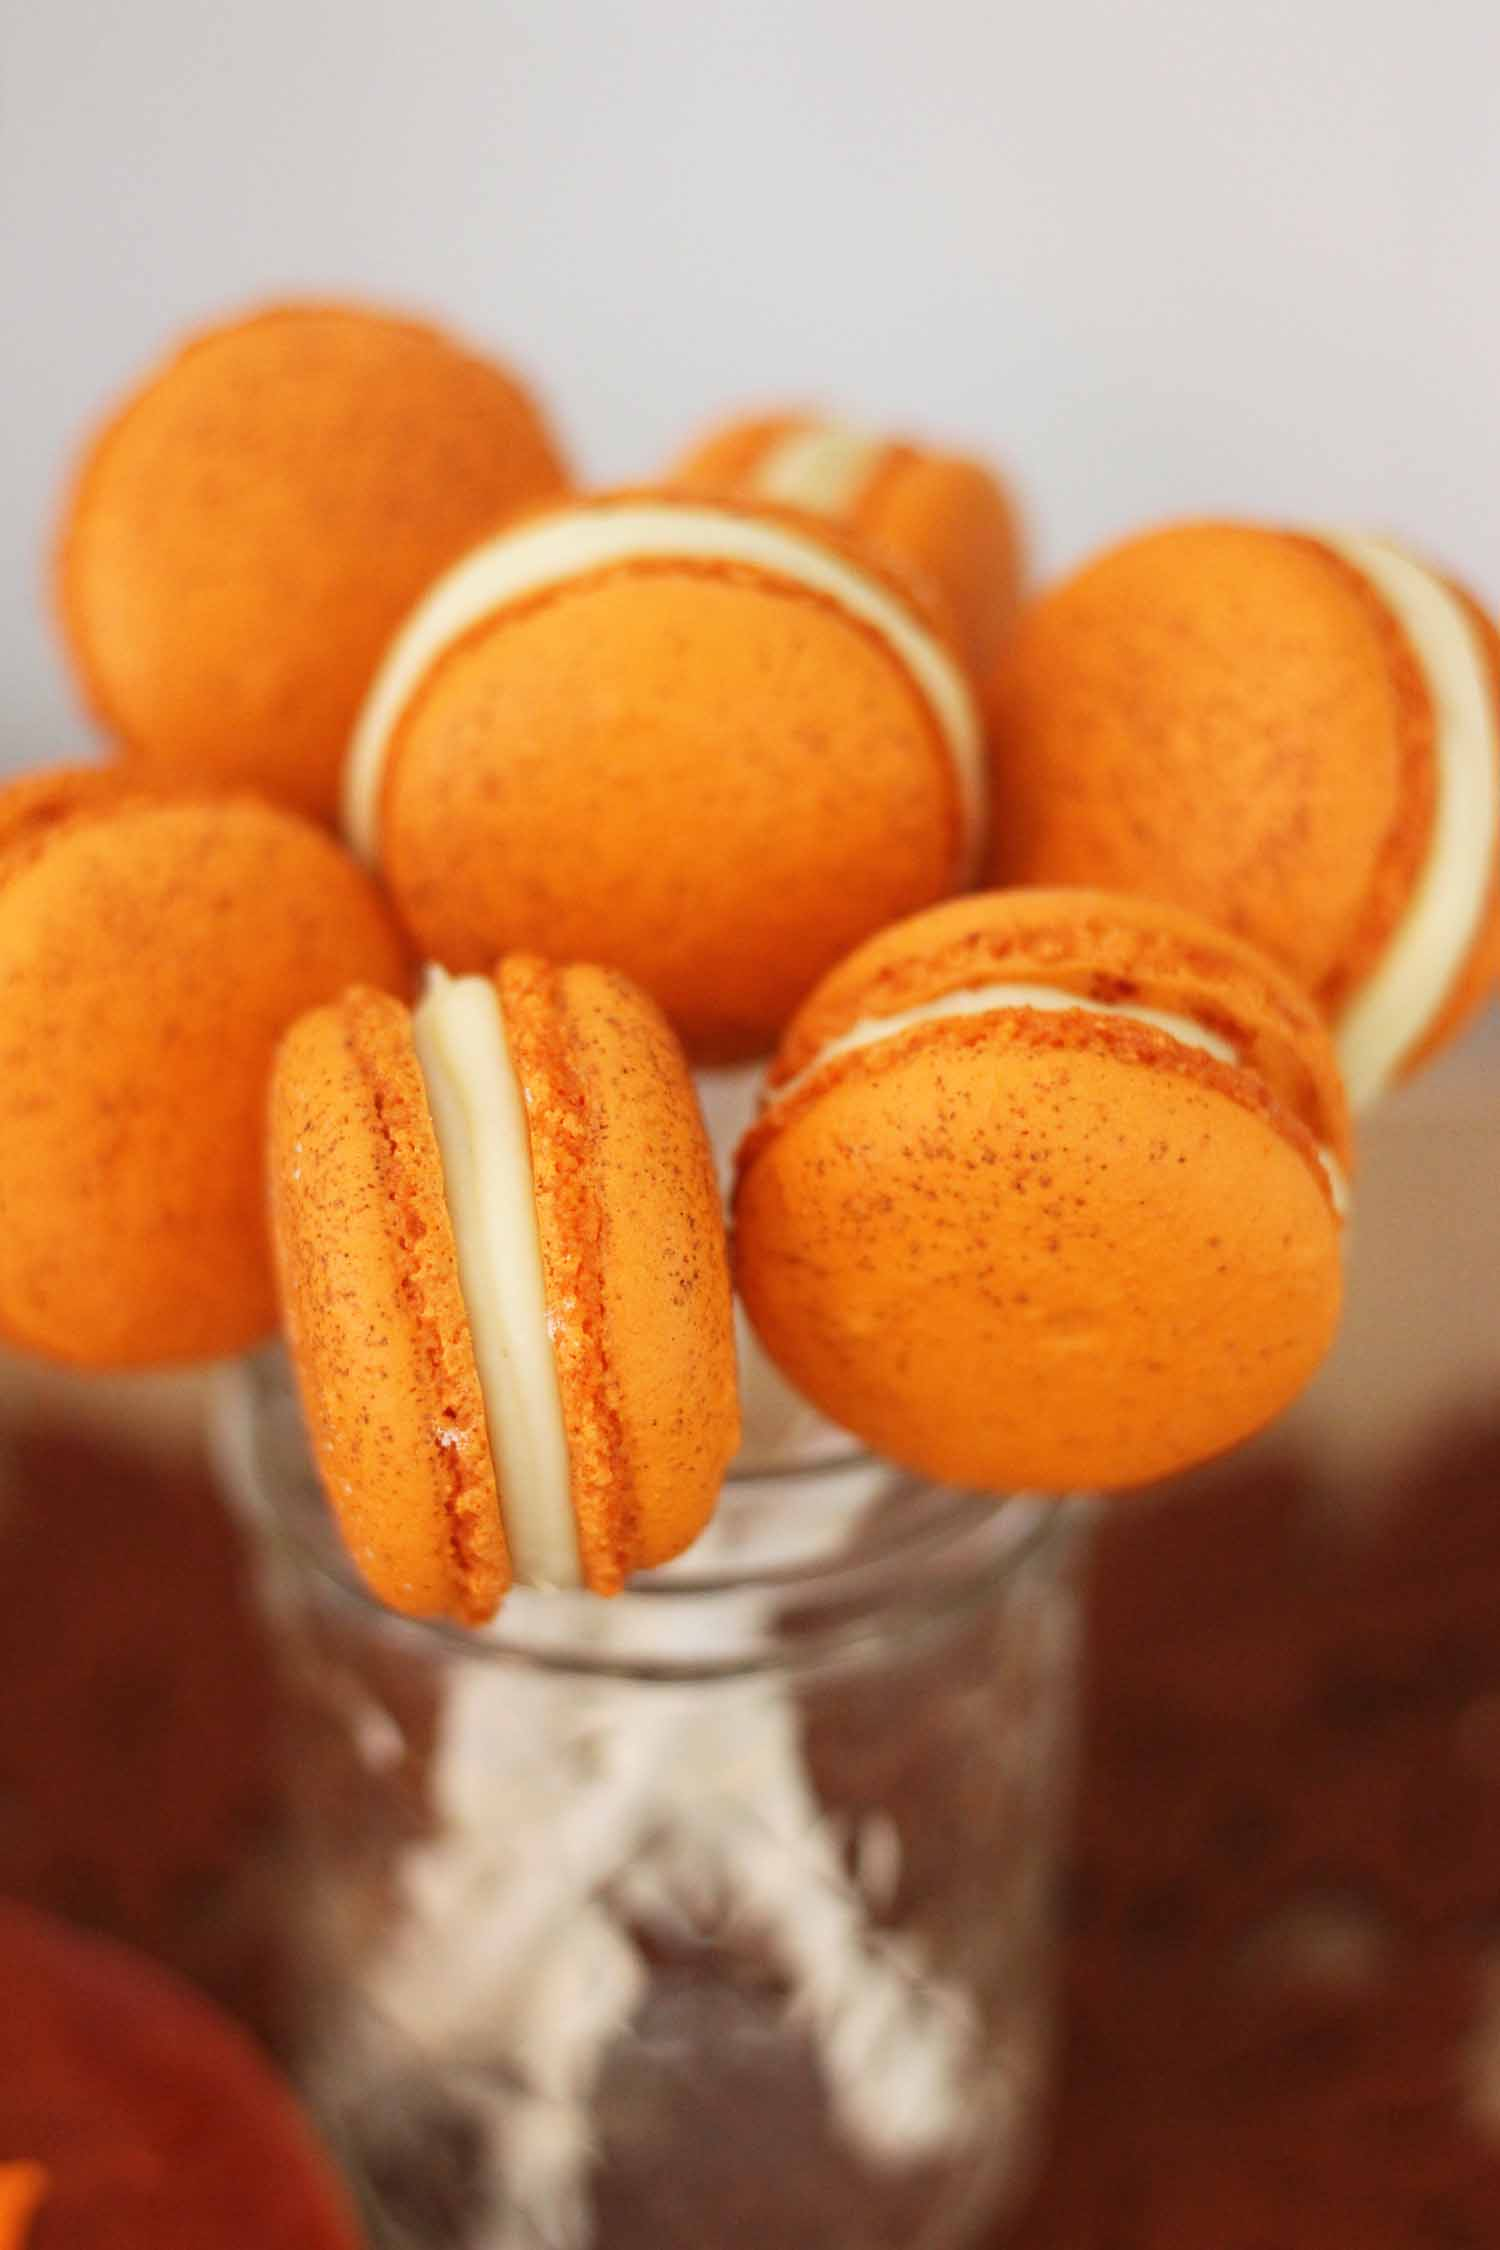 macaron pops from french bakery in sparta nj